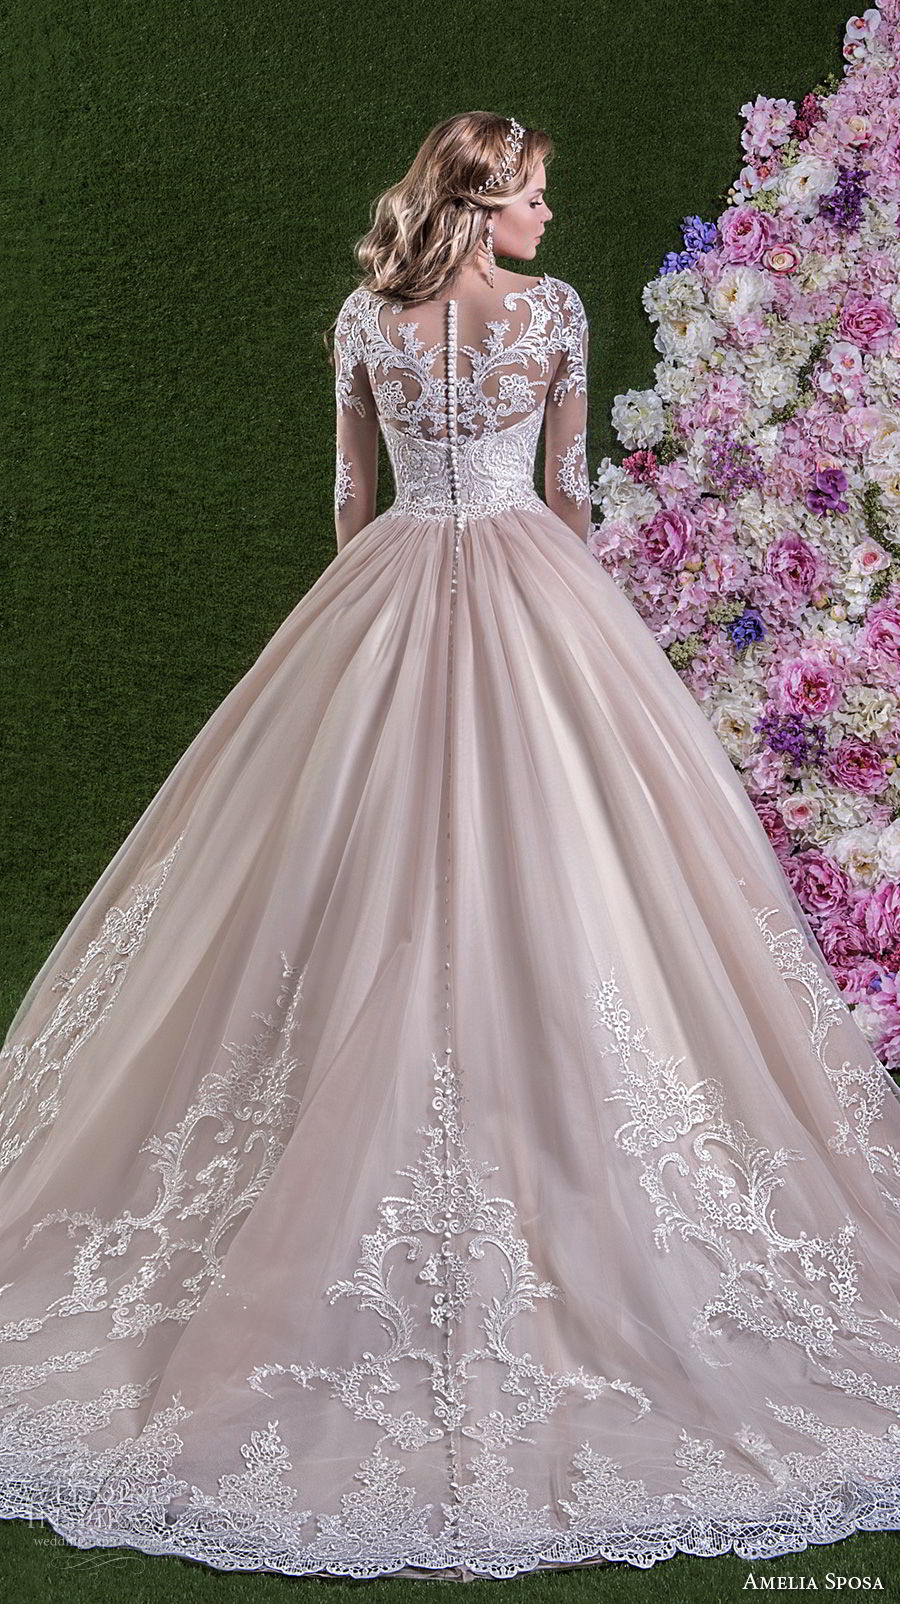 amelia sposa 2018 bridal long sleeves illusion boat sweetheart neckline heavily embellished bodice pink ball gown wedding dream lace back long train (rachele) bv